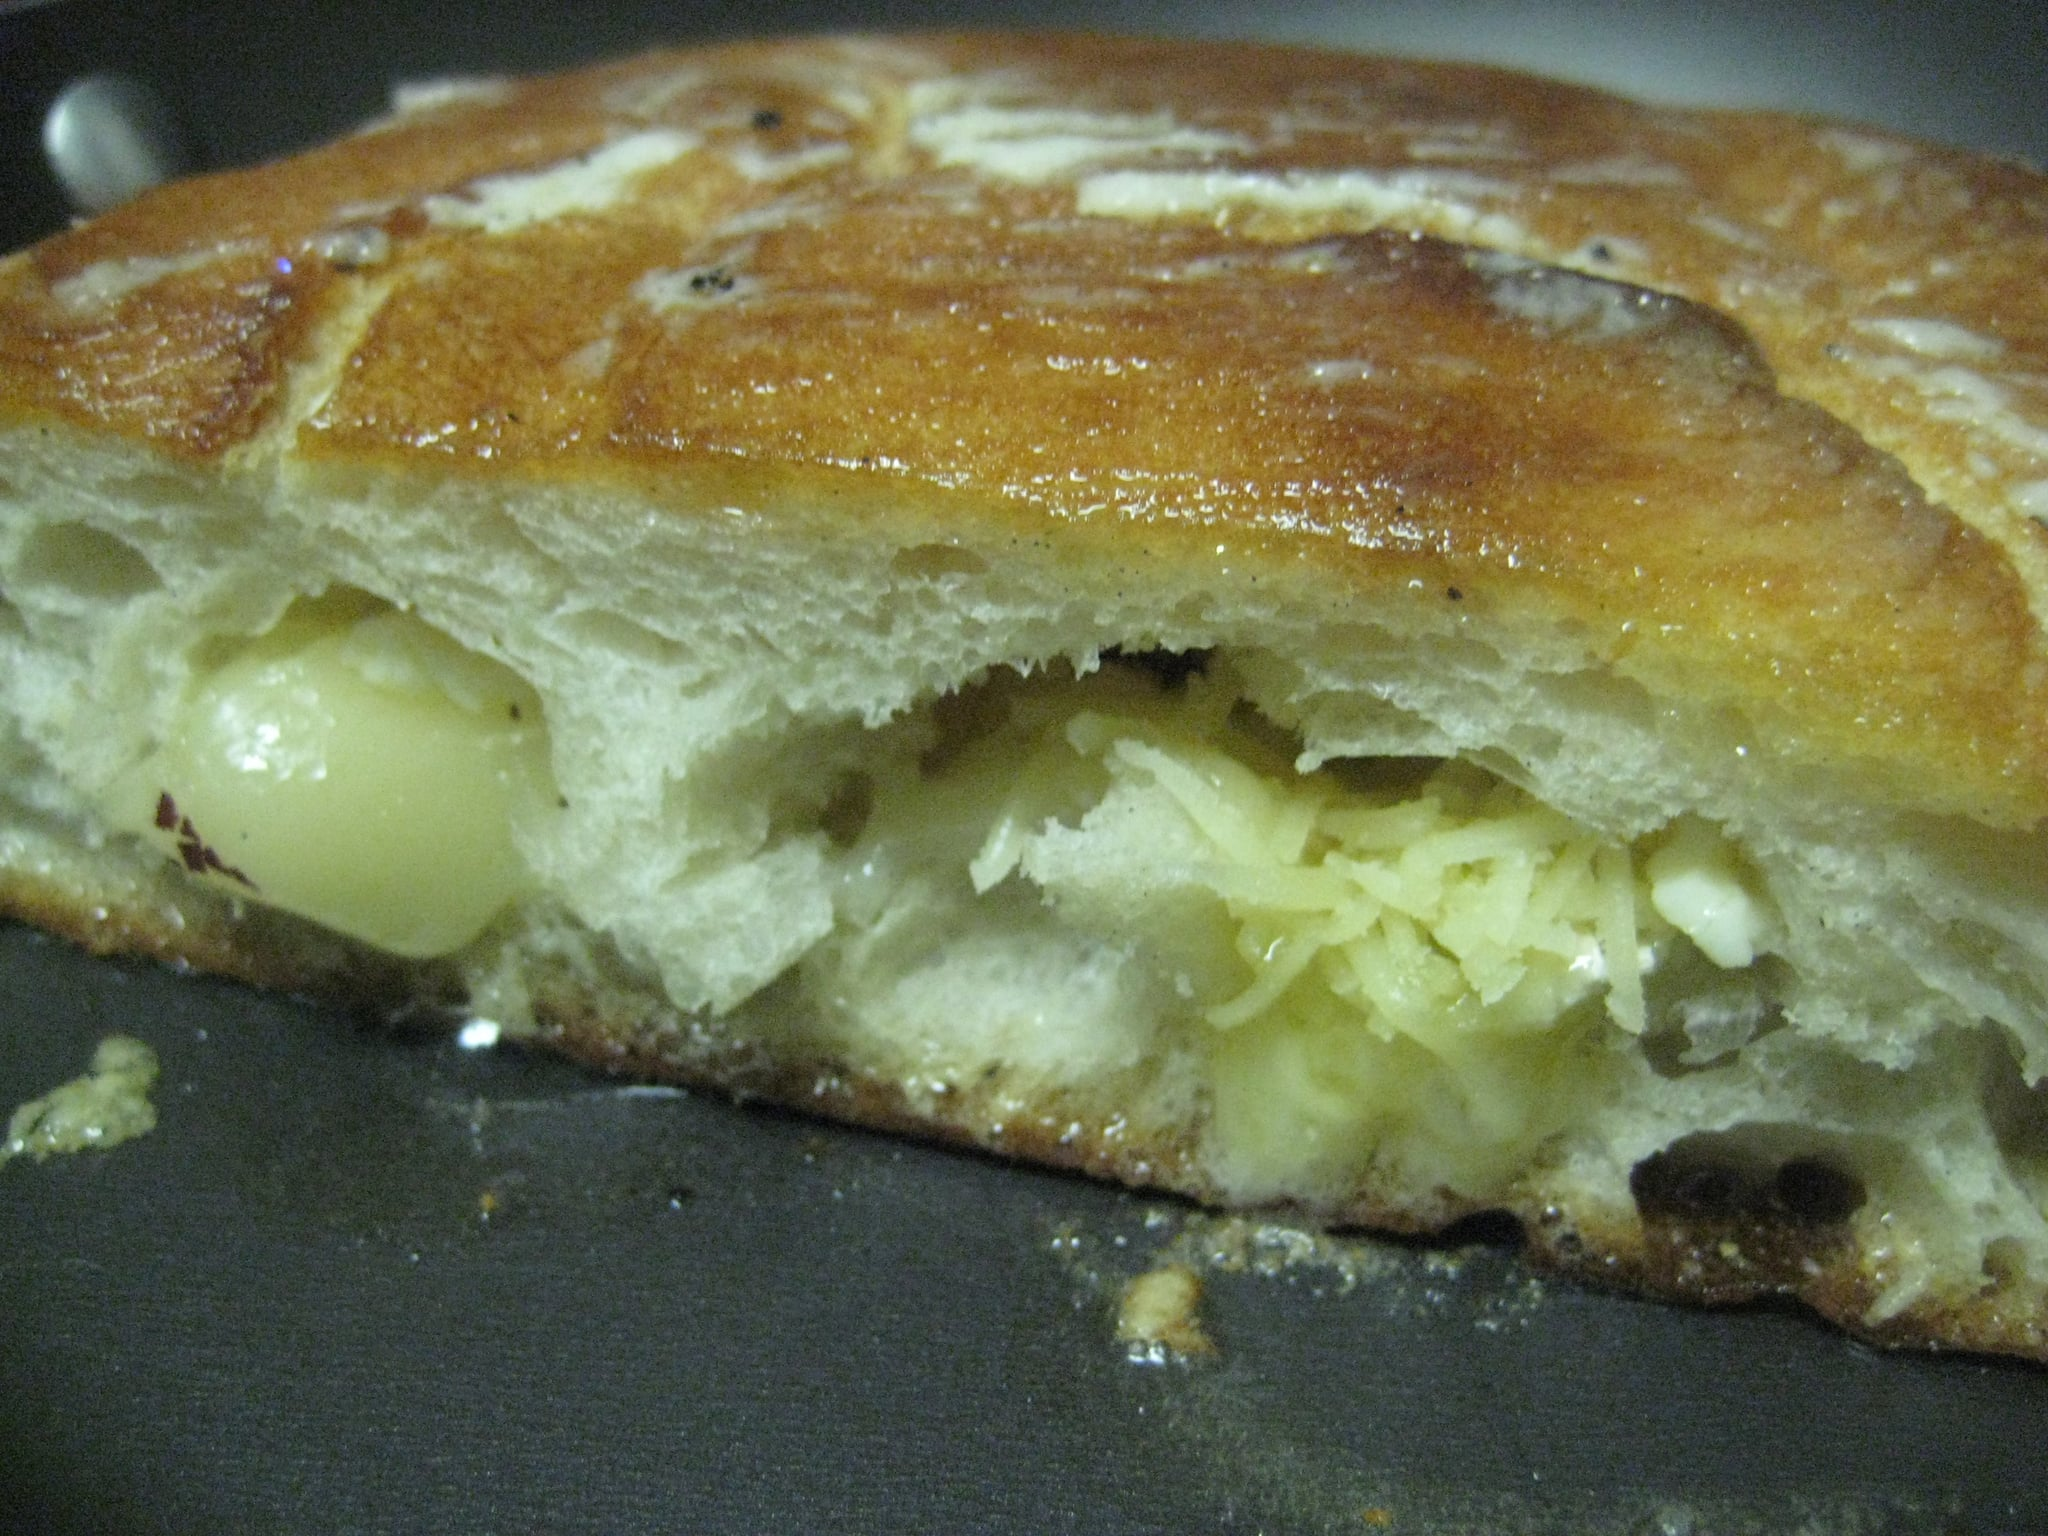 Party's Ultimate Grilled Cheese